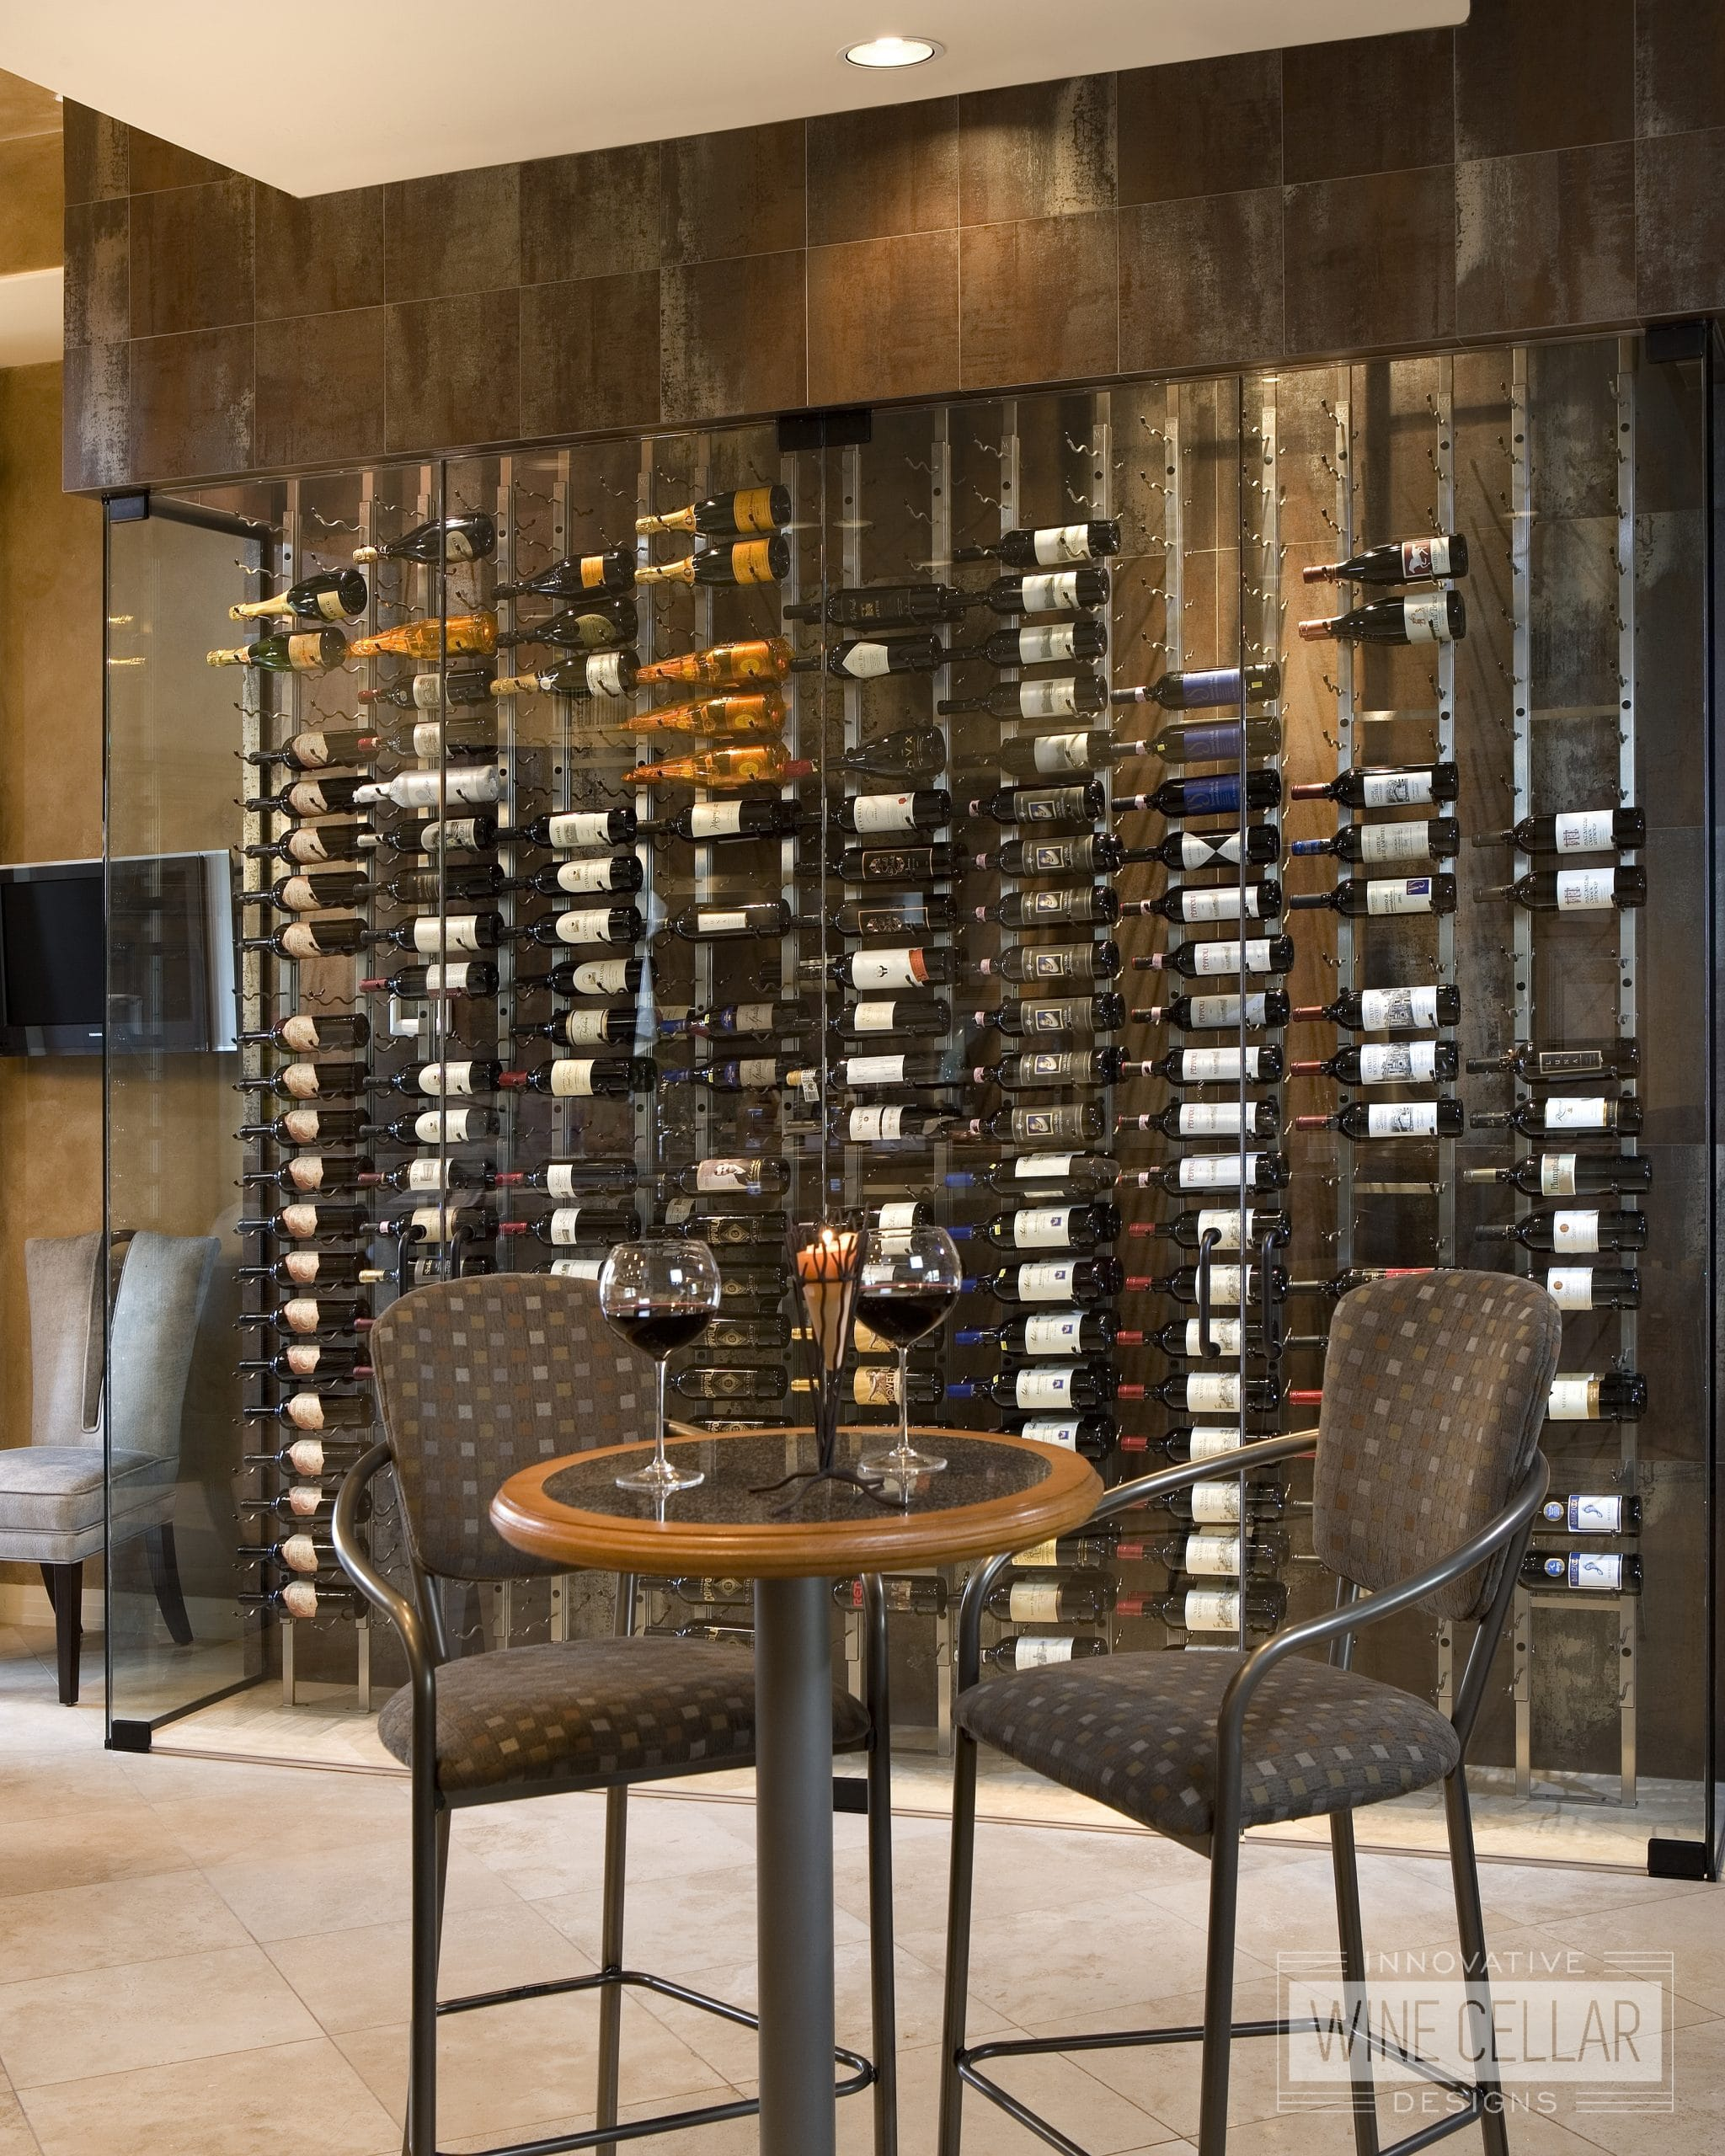 Single wall wine storage enclosed with glass doors for temperature control.